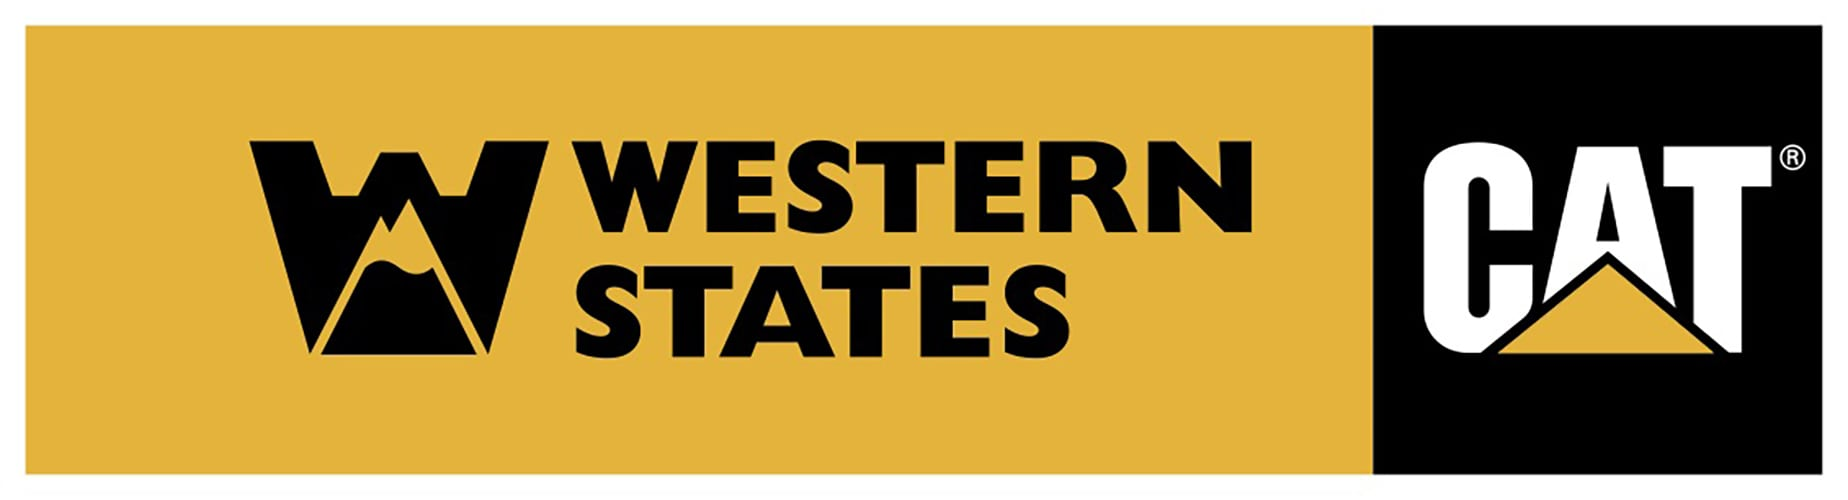 Western States Cat_Web